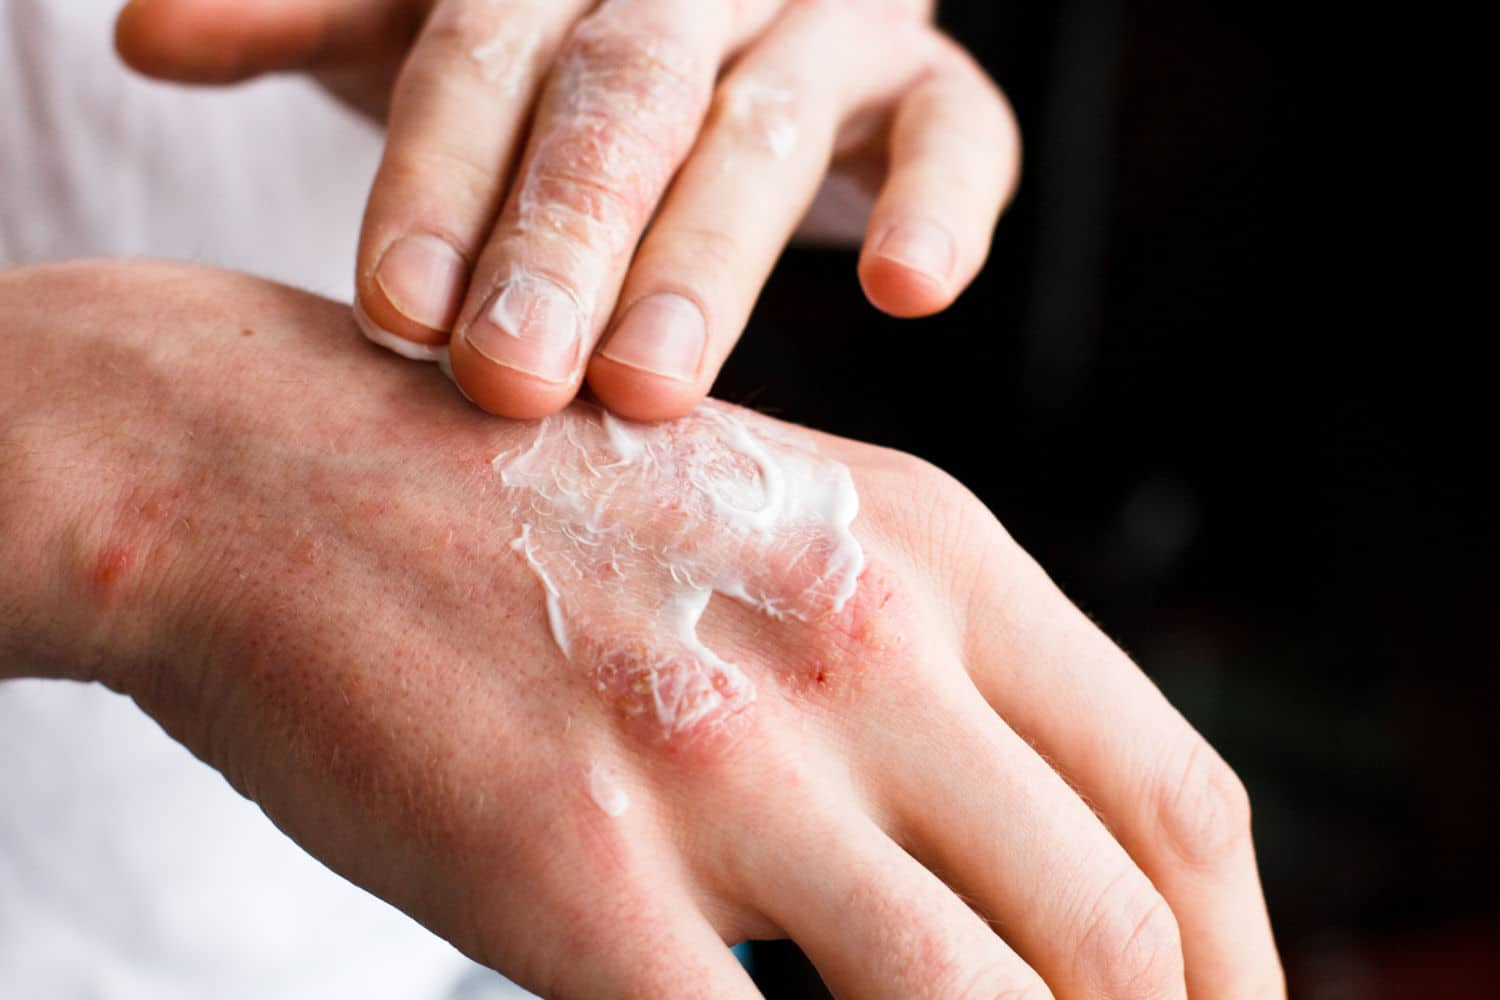 Paraffin-based skin creams are flammable - be careful